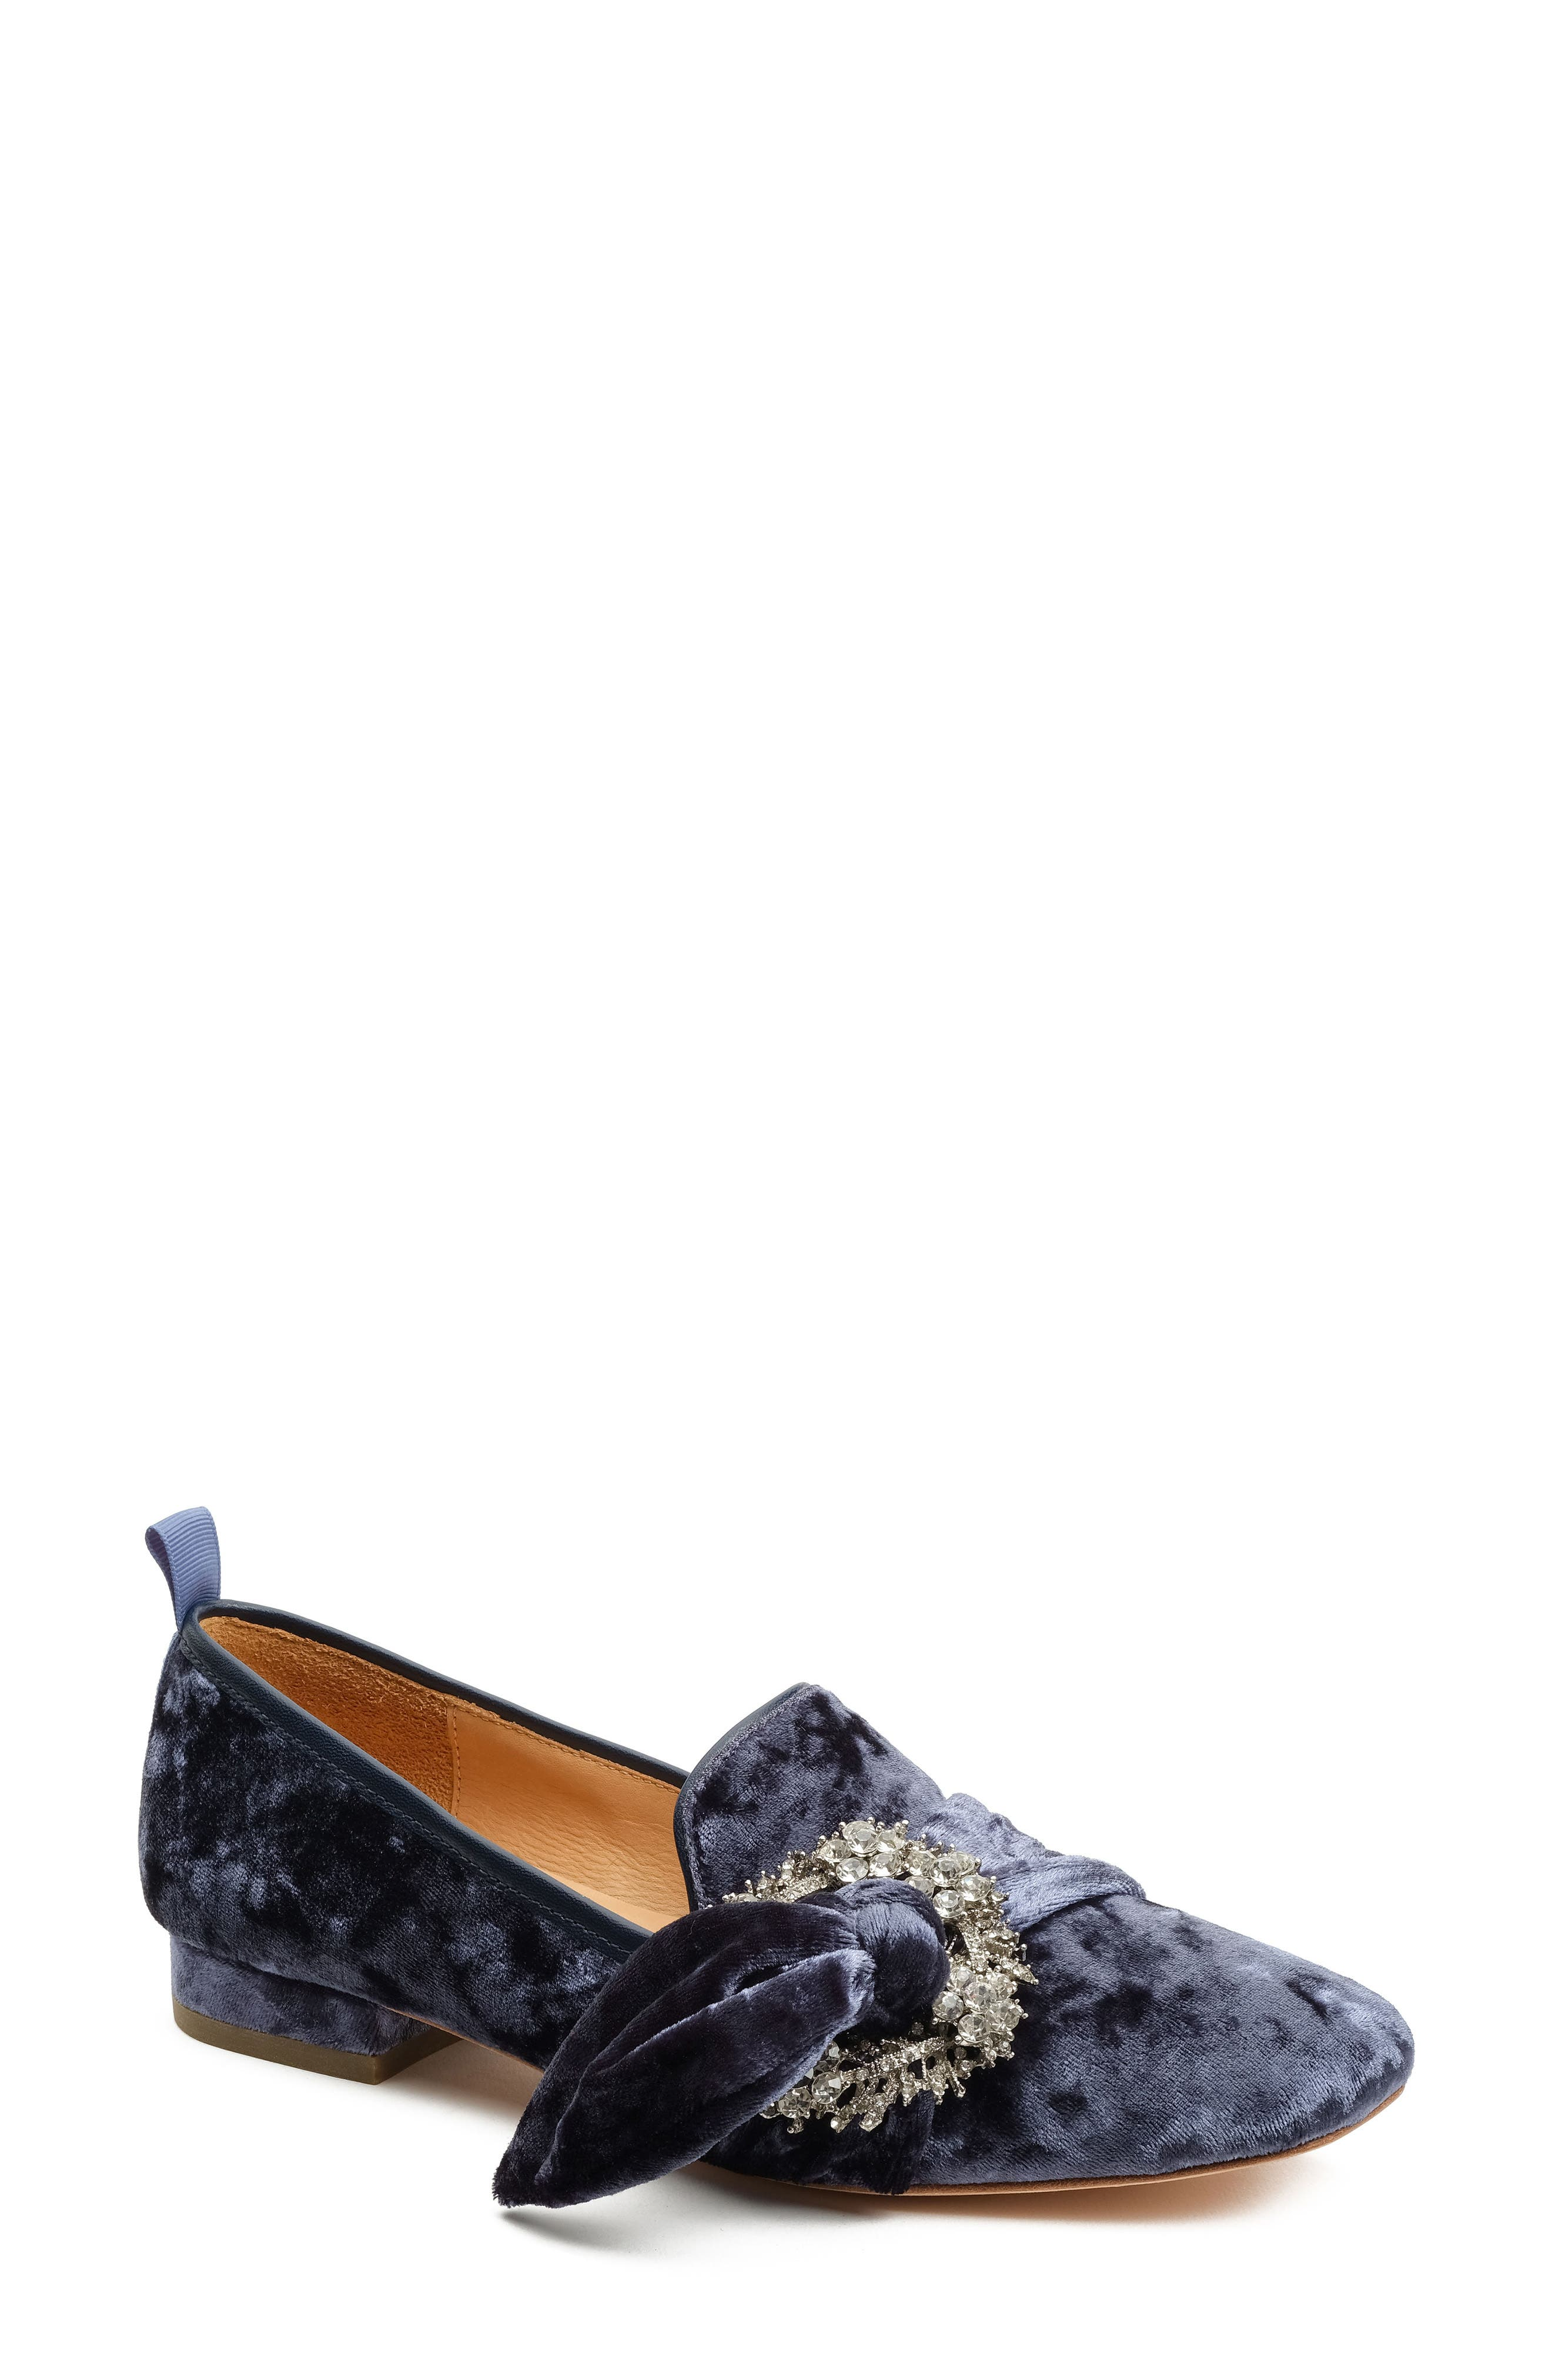 Alternate Image 1 Selected - Bill Blass Laverne Embellished Loafer (Women)